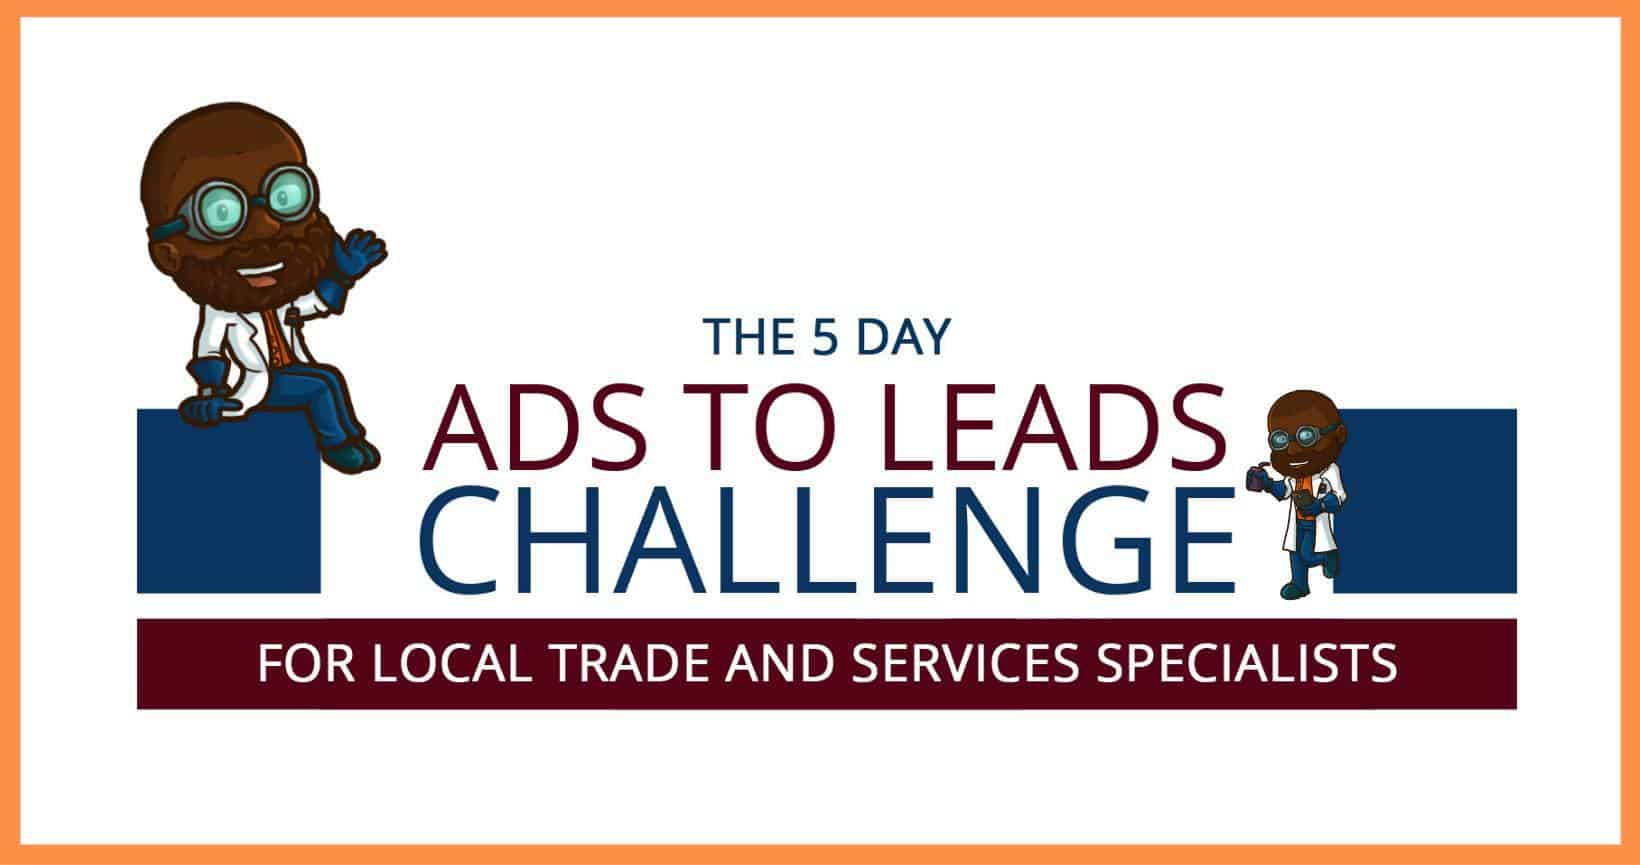 5 Day Ads to Leads Challenge